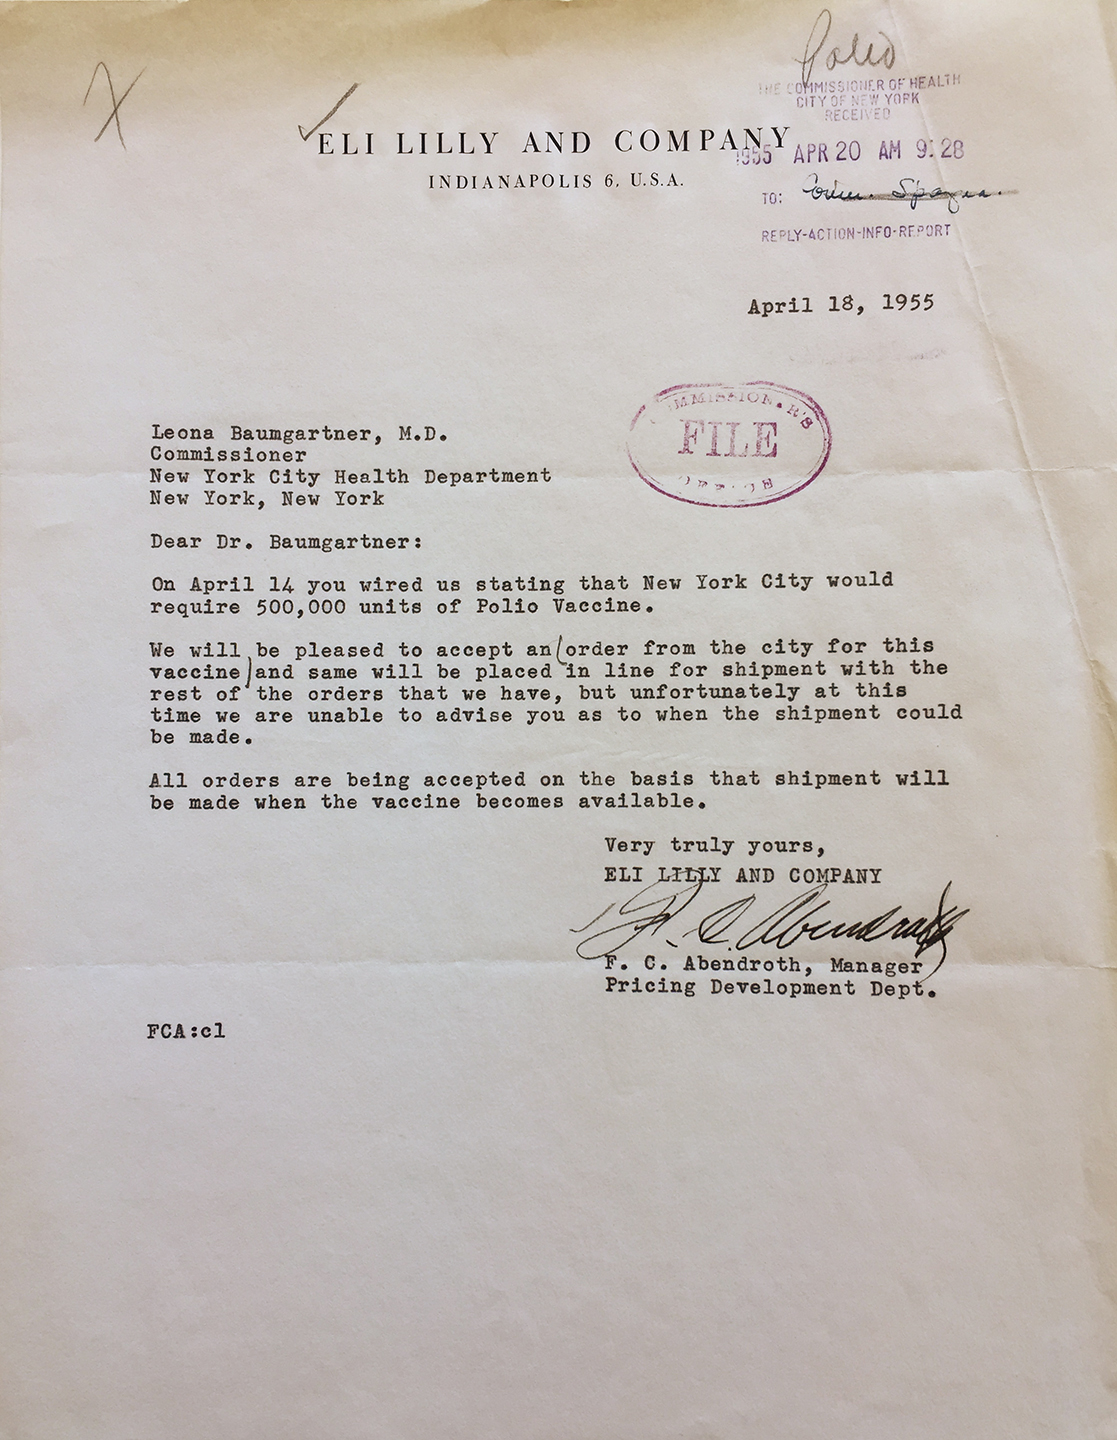 Letter from pharmaceutical manufacturer Eli Lilly confirming Commissioner Baumgartner's order for 500,000 units of the polio vaccine. Department of Health Collection, NYC Municipal Archives.